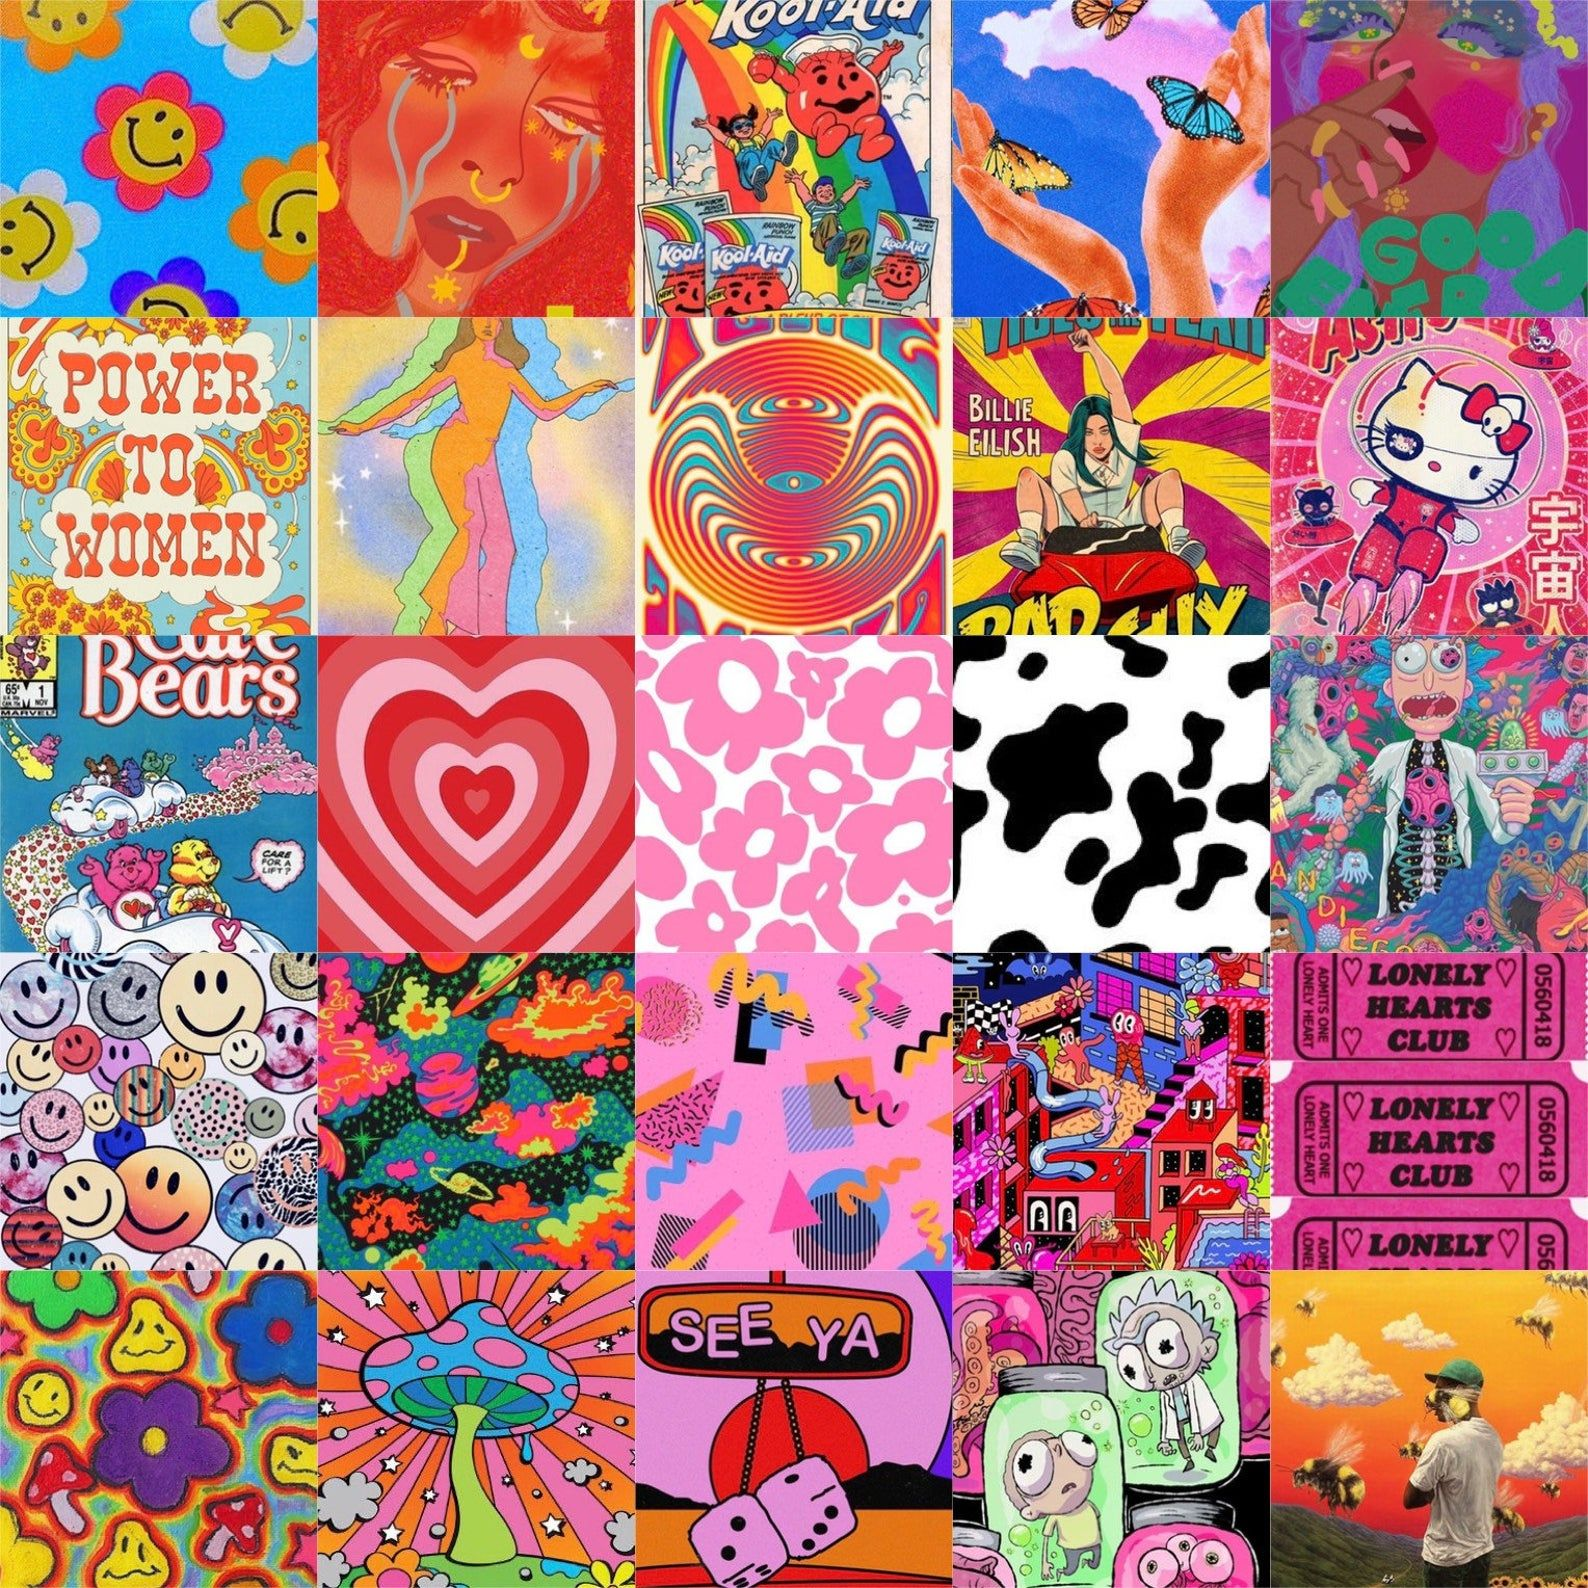 Indie kid / hippie trendy wall collage digital photos 75pc (Contact Me For Link, no physical photos)